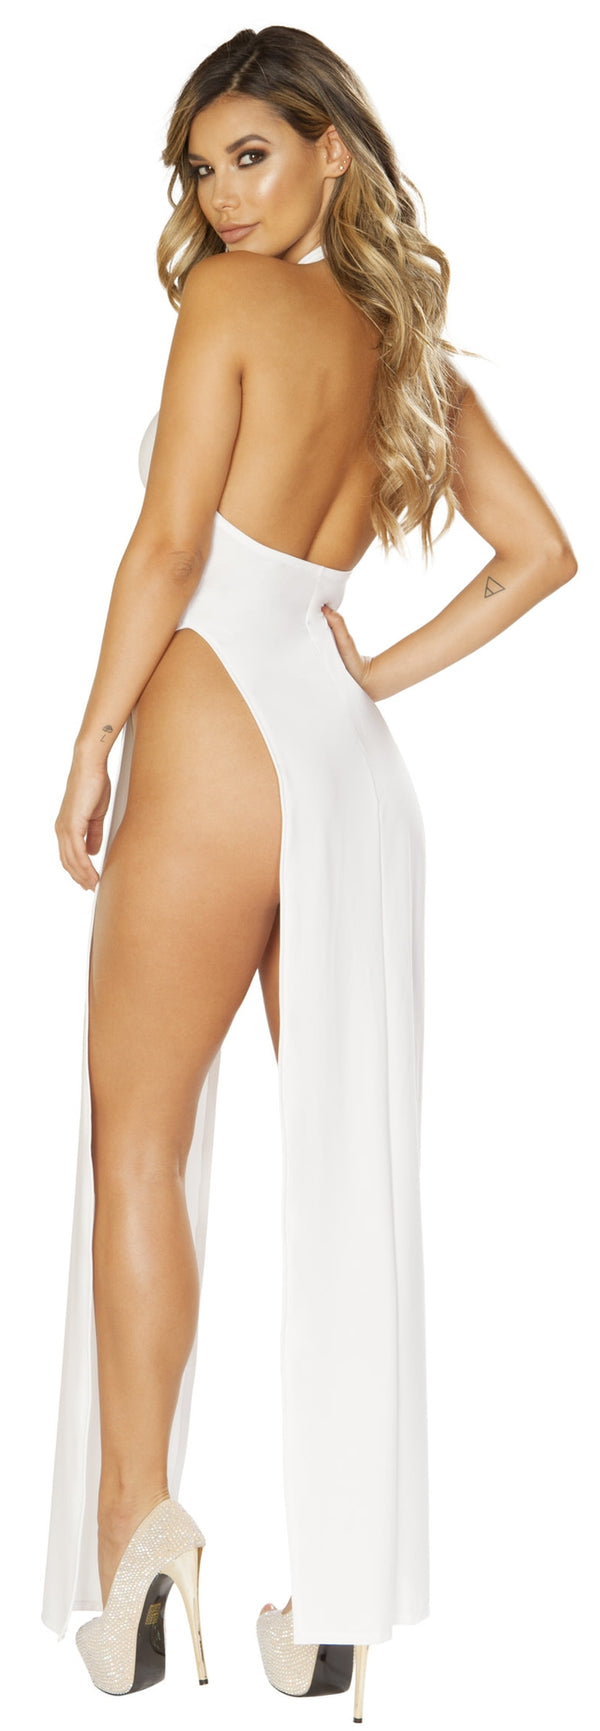 RM-3656 High Cut White Maxi Dress with high side slits back